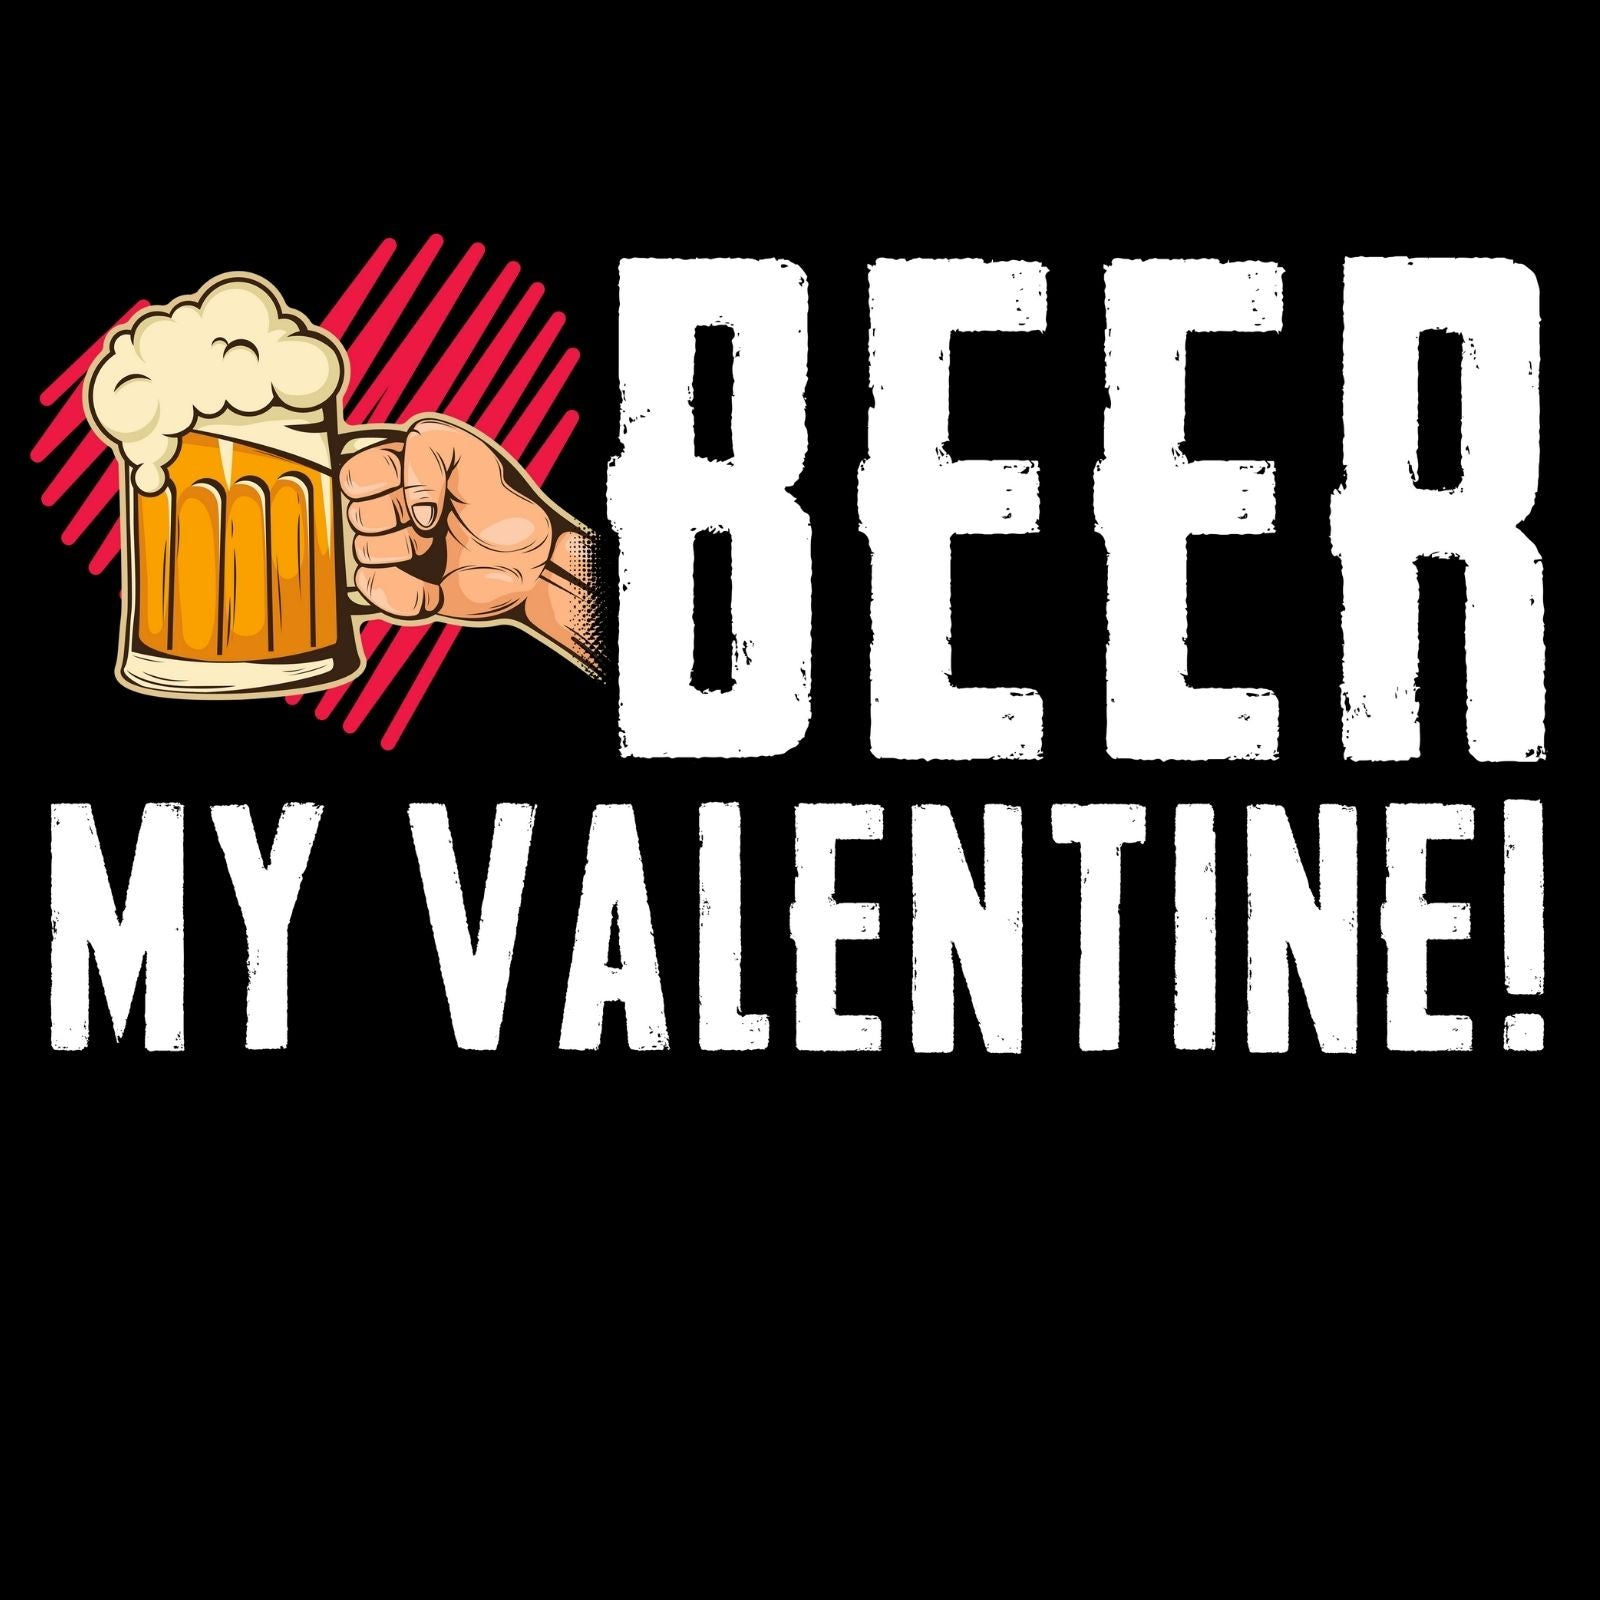 BEER My Valentine! - Bastard Graphics